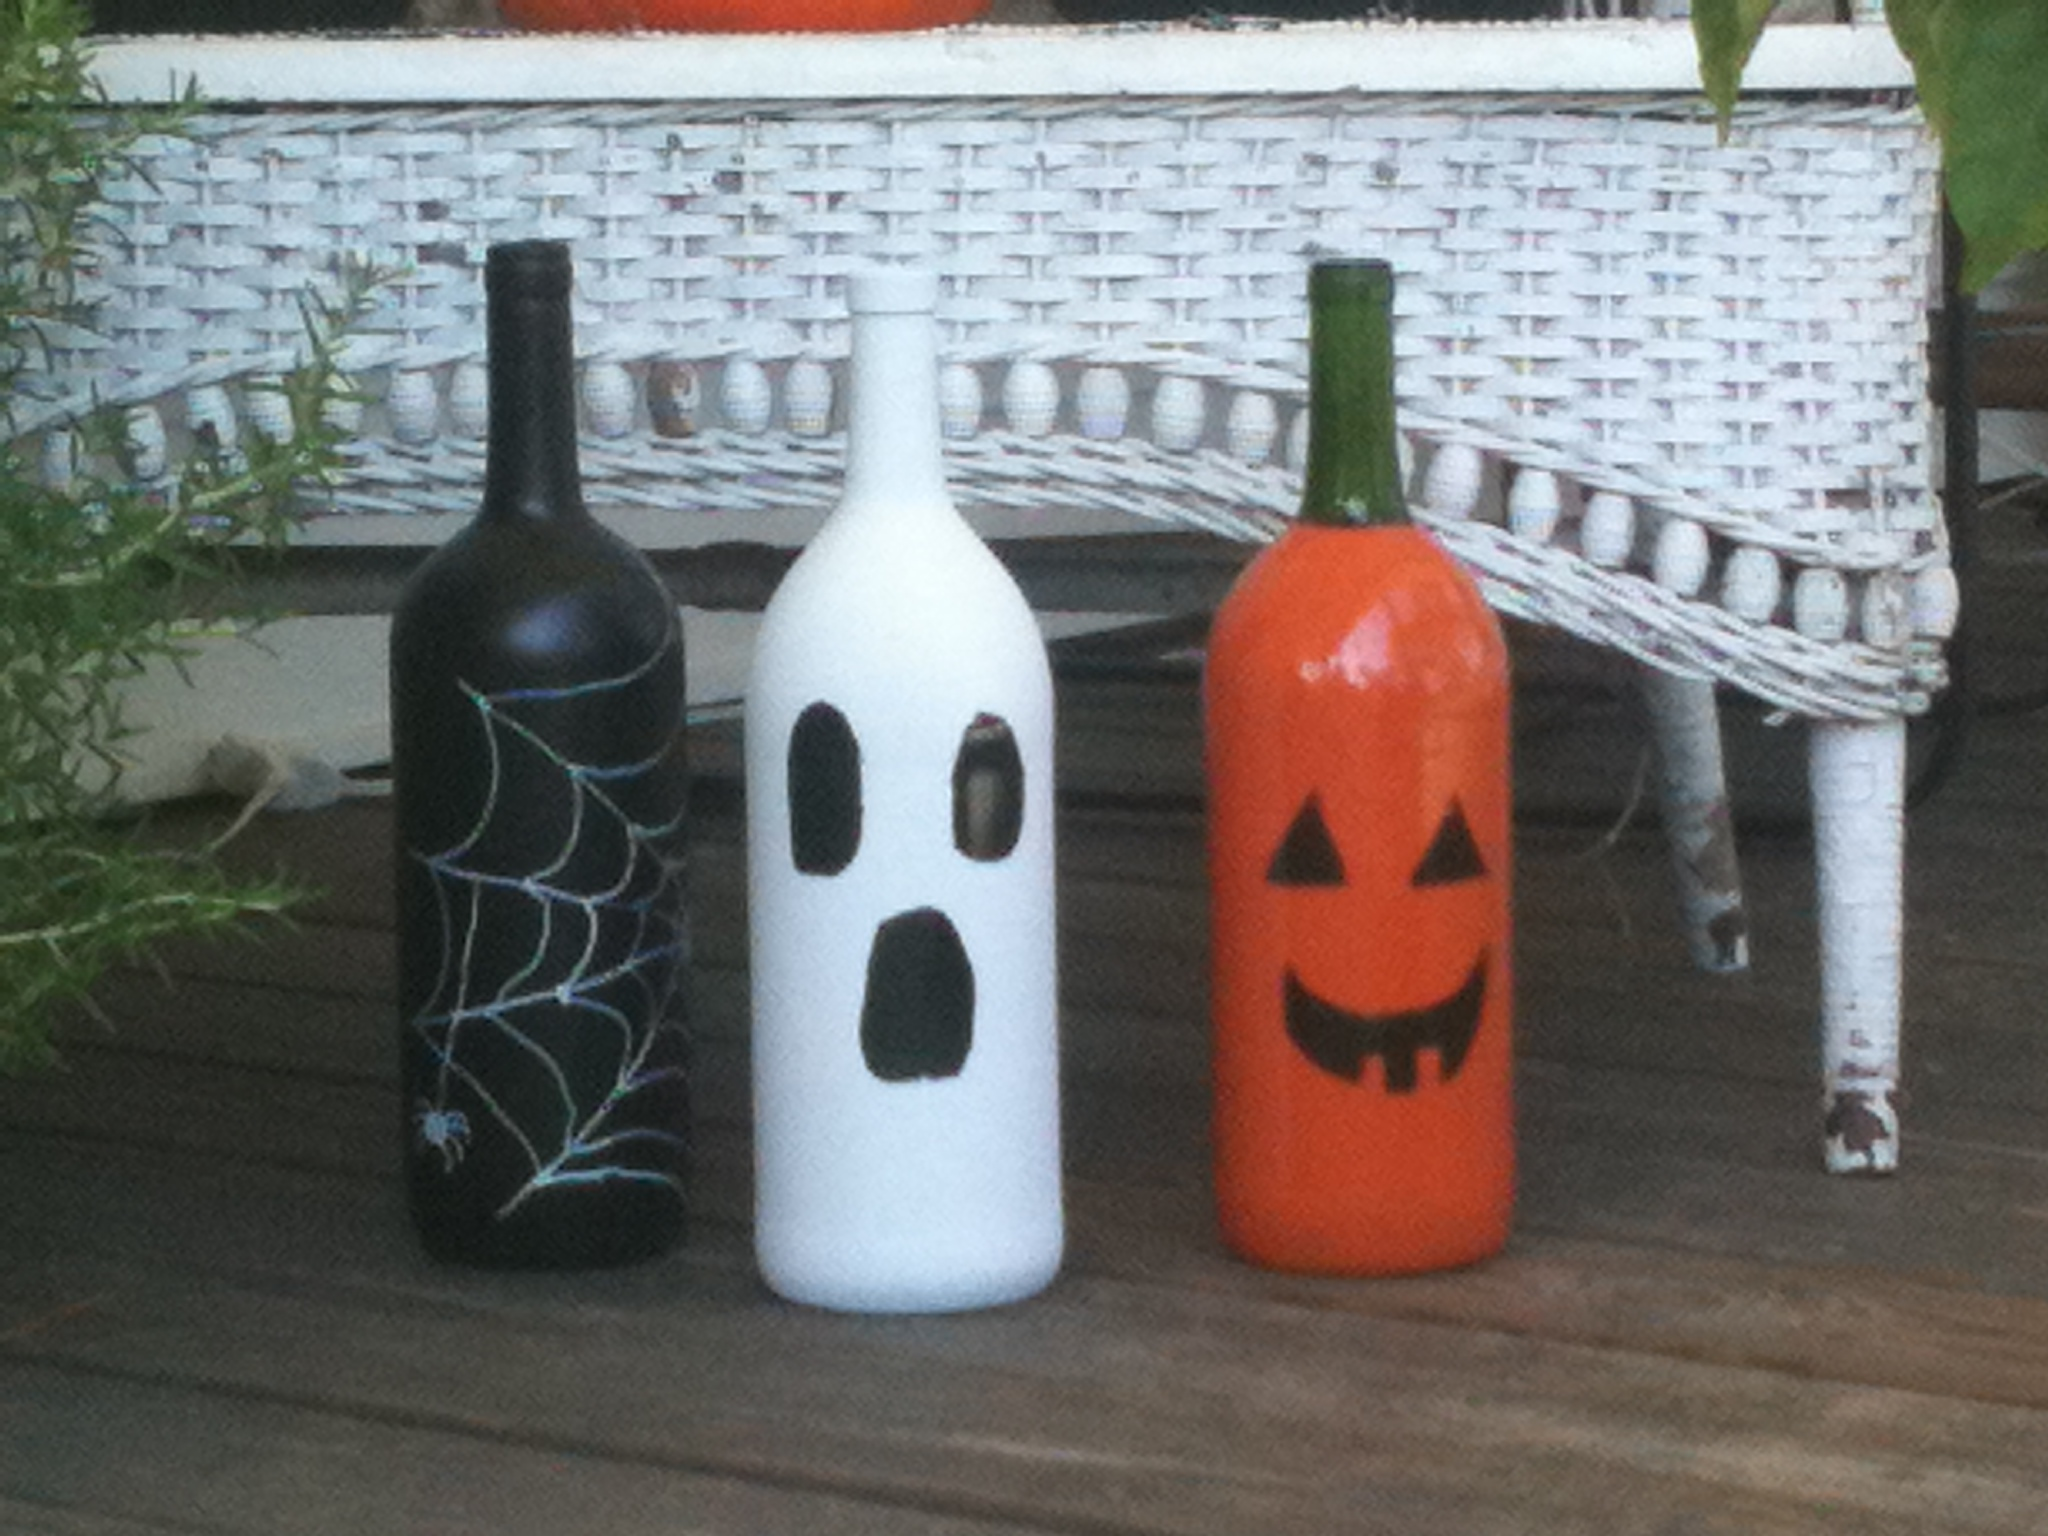 Diy halloween decorations view from our front porch swing - Homemade halloween decorations ...